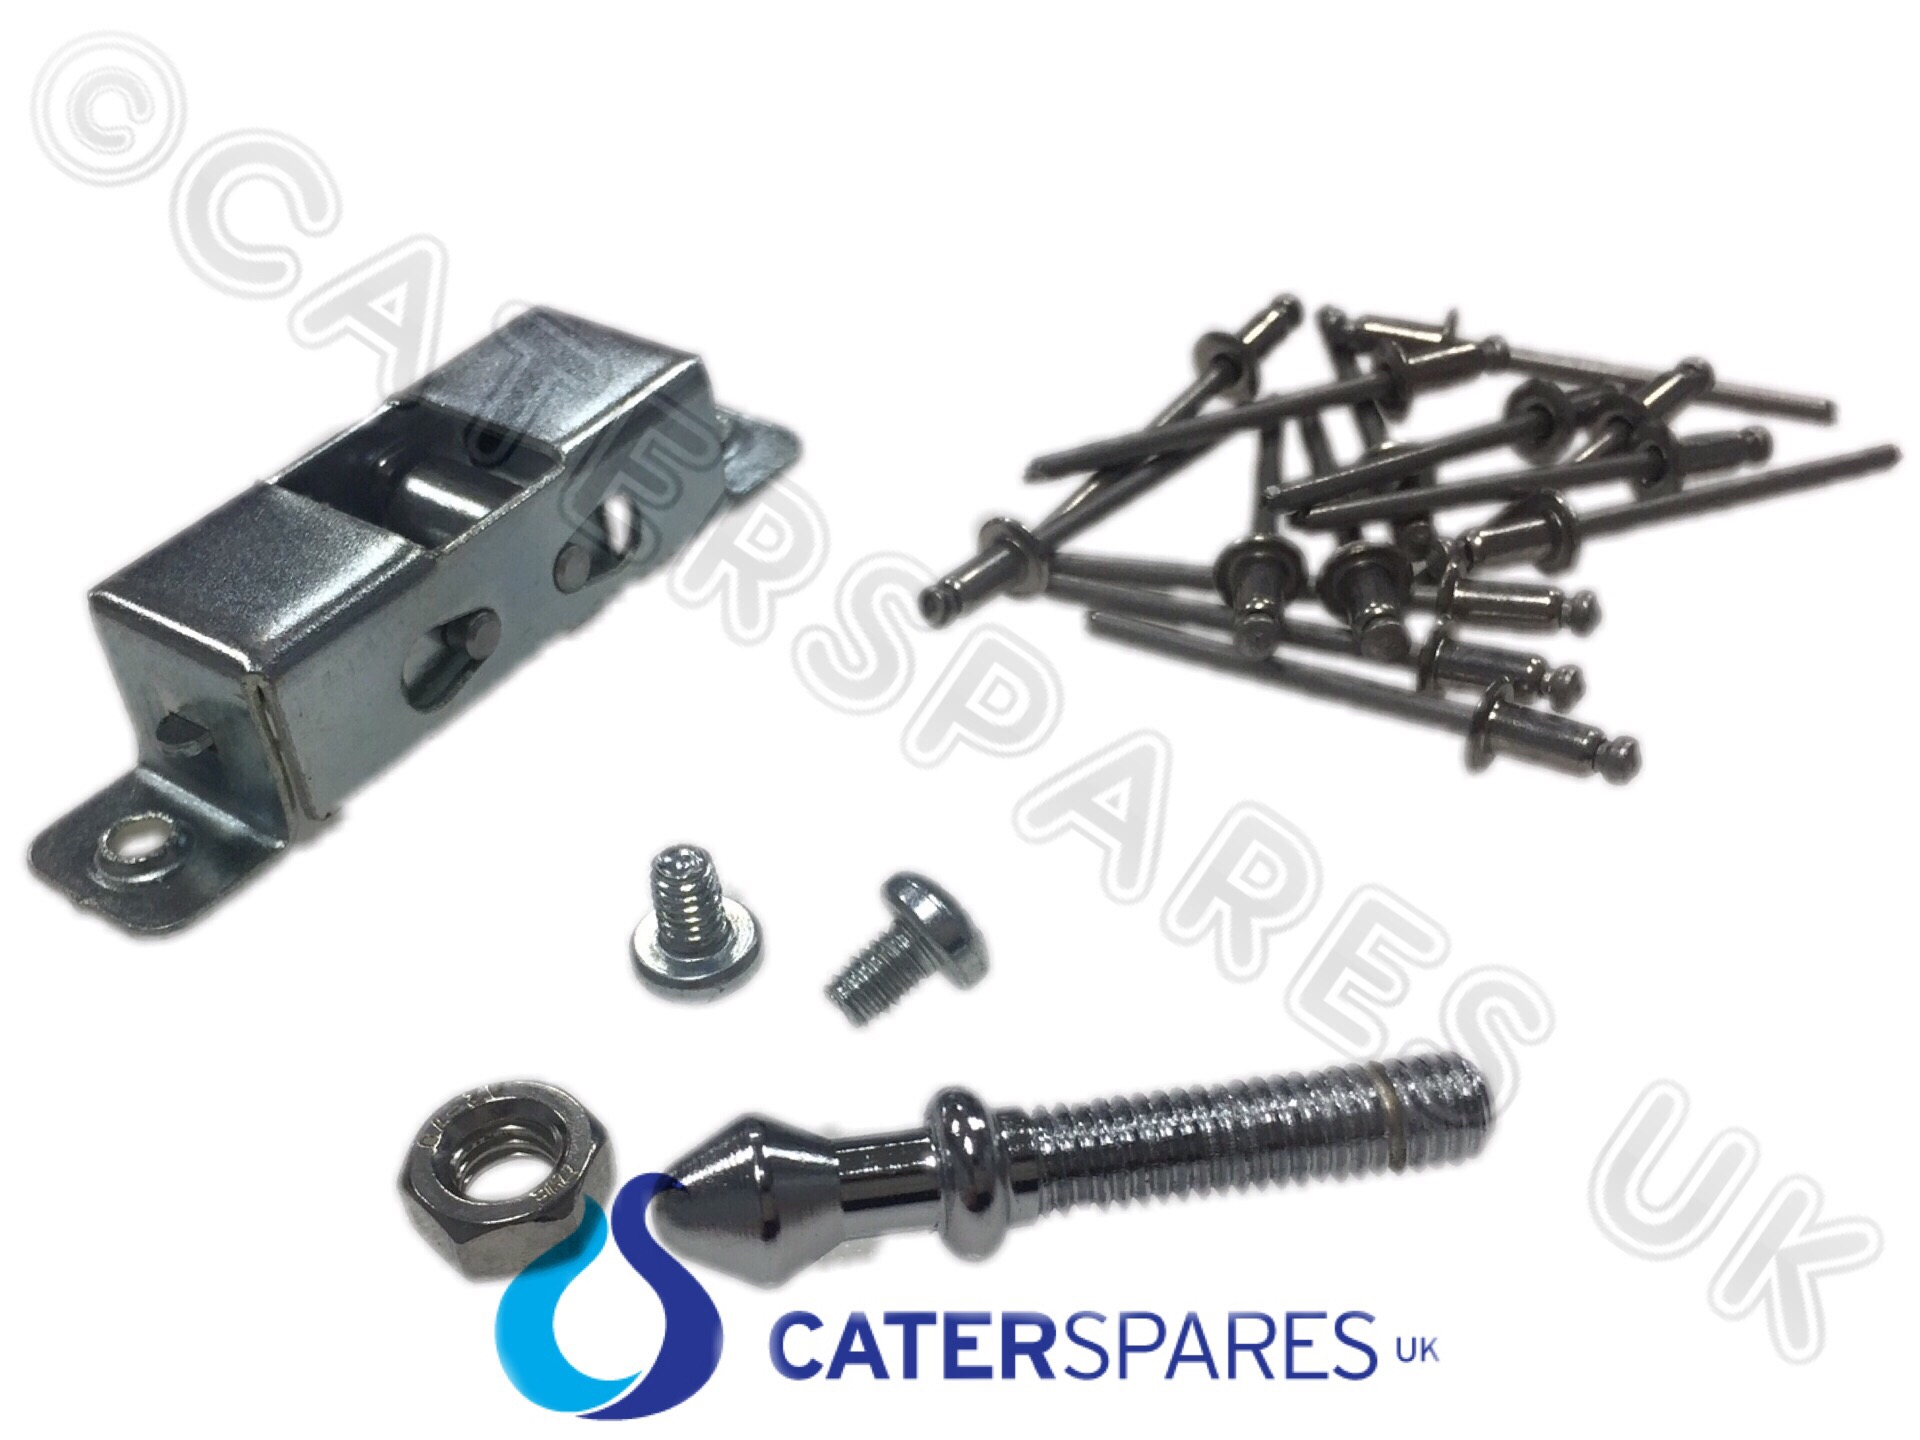 Falcon convection oven door catch assy and receiver pin e parts jpg  1920x1440 Commercial oven door